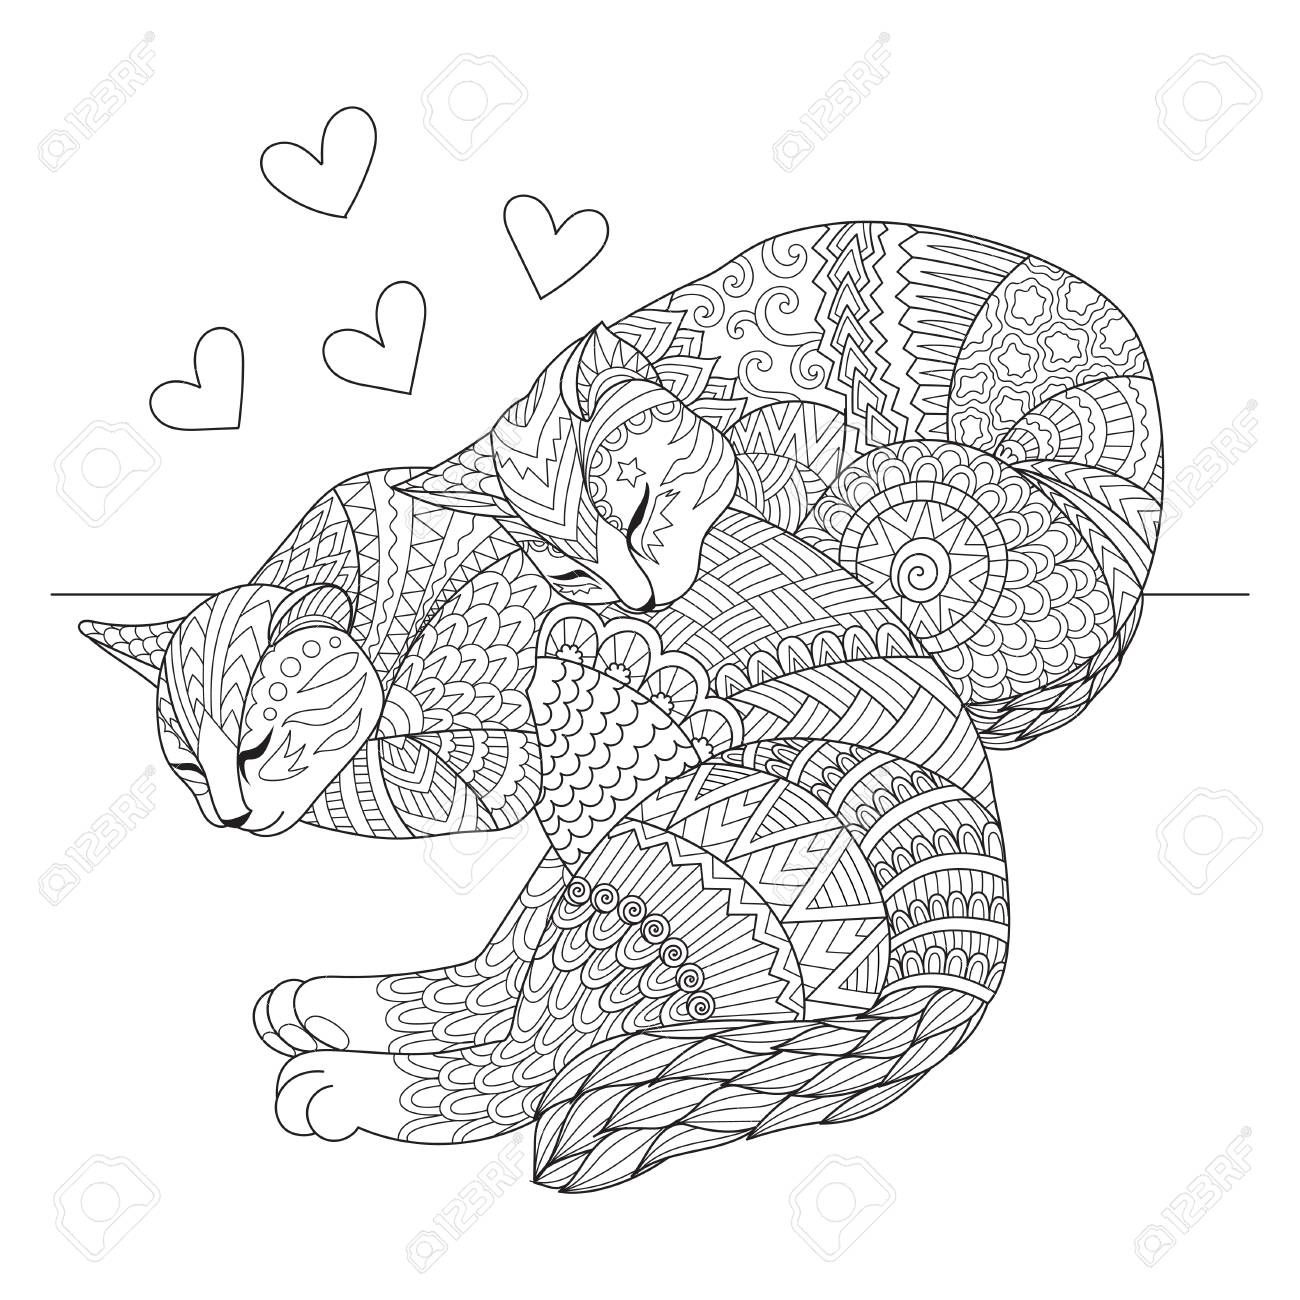 Cute two cats sleeping for cards t shirt design adult coloring book coloring page and print on other things Vector illustration Illustration